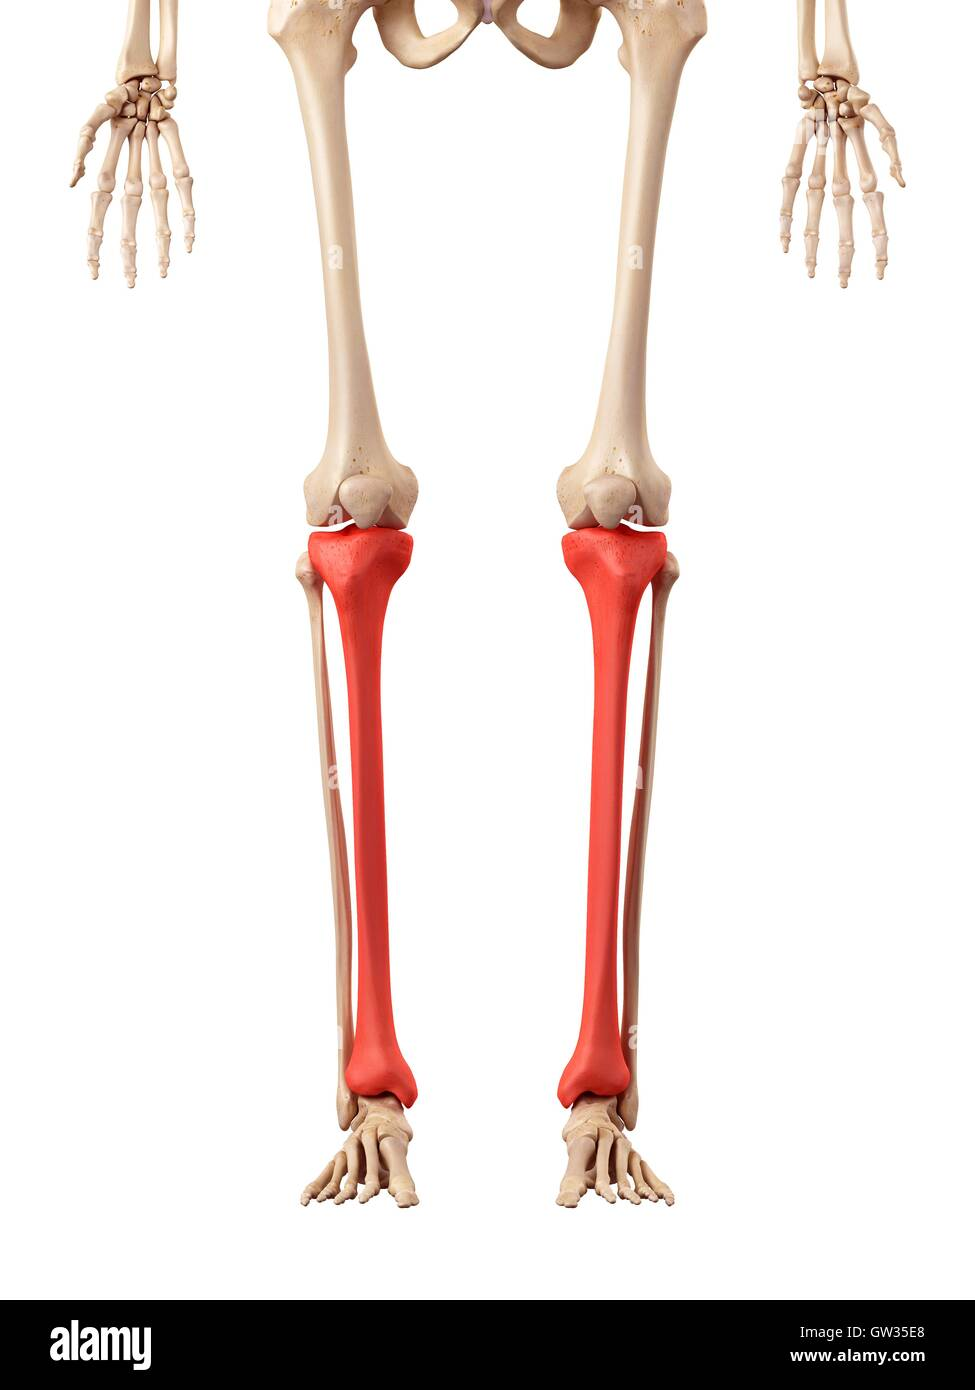 Lower Leg Bones Stock Photos Lower Leg Bones Stock Images Alamy